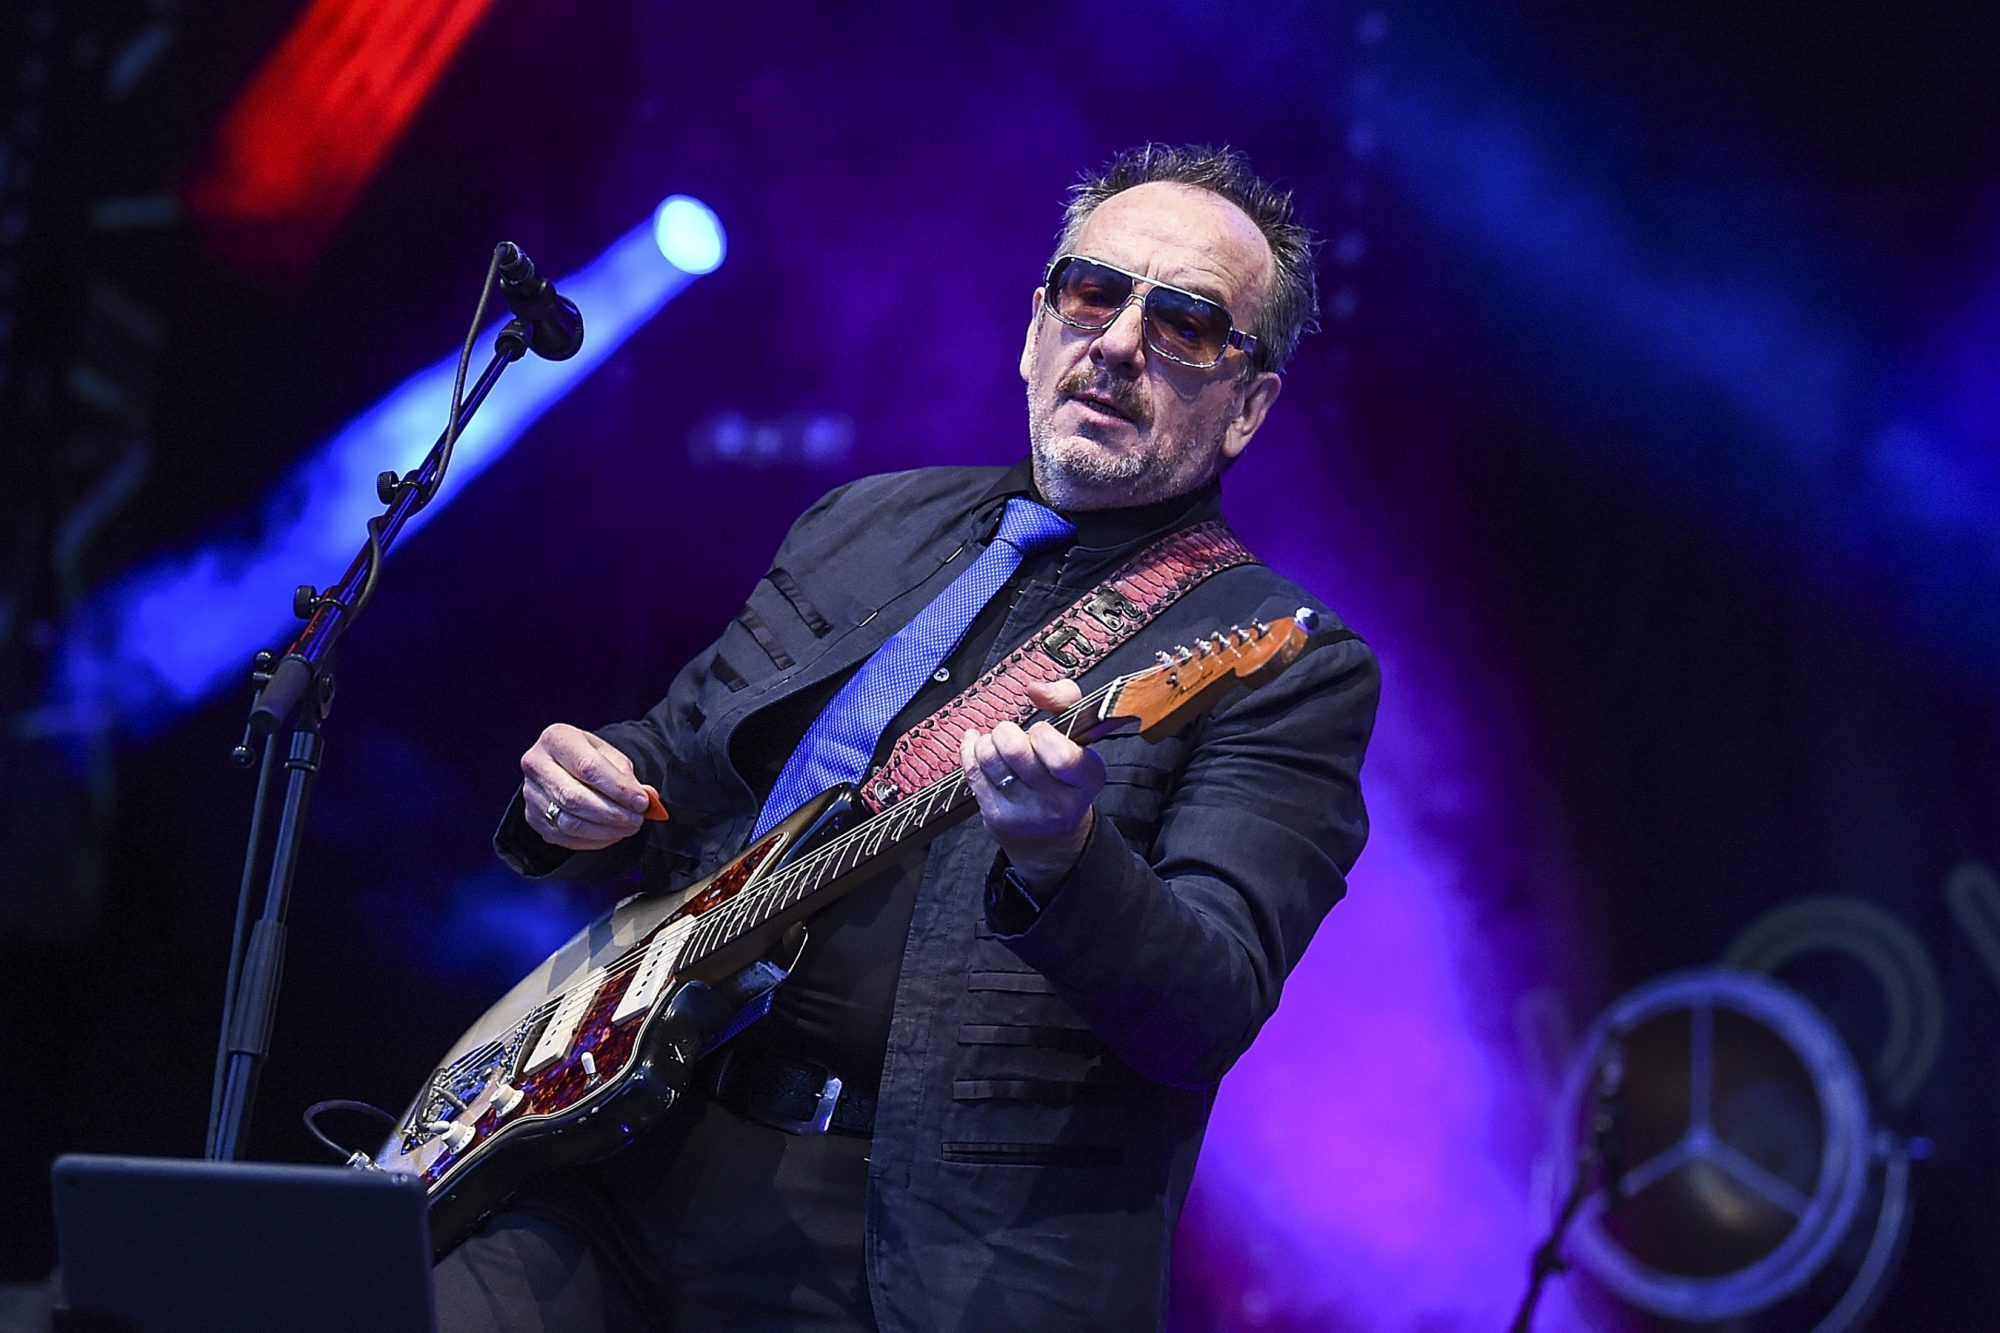 BRIGHTON, ENGLAND - JUNE 30: Elvis Costello & The Imposters headline the Main Stage on day 2 of Love Supreme Festival on June 30, 2018 in Brighton, England. (Photo by Tabatha Fireman/Redferns,)